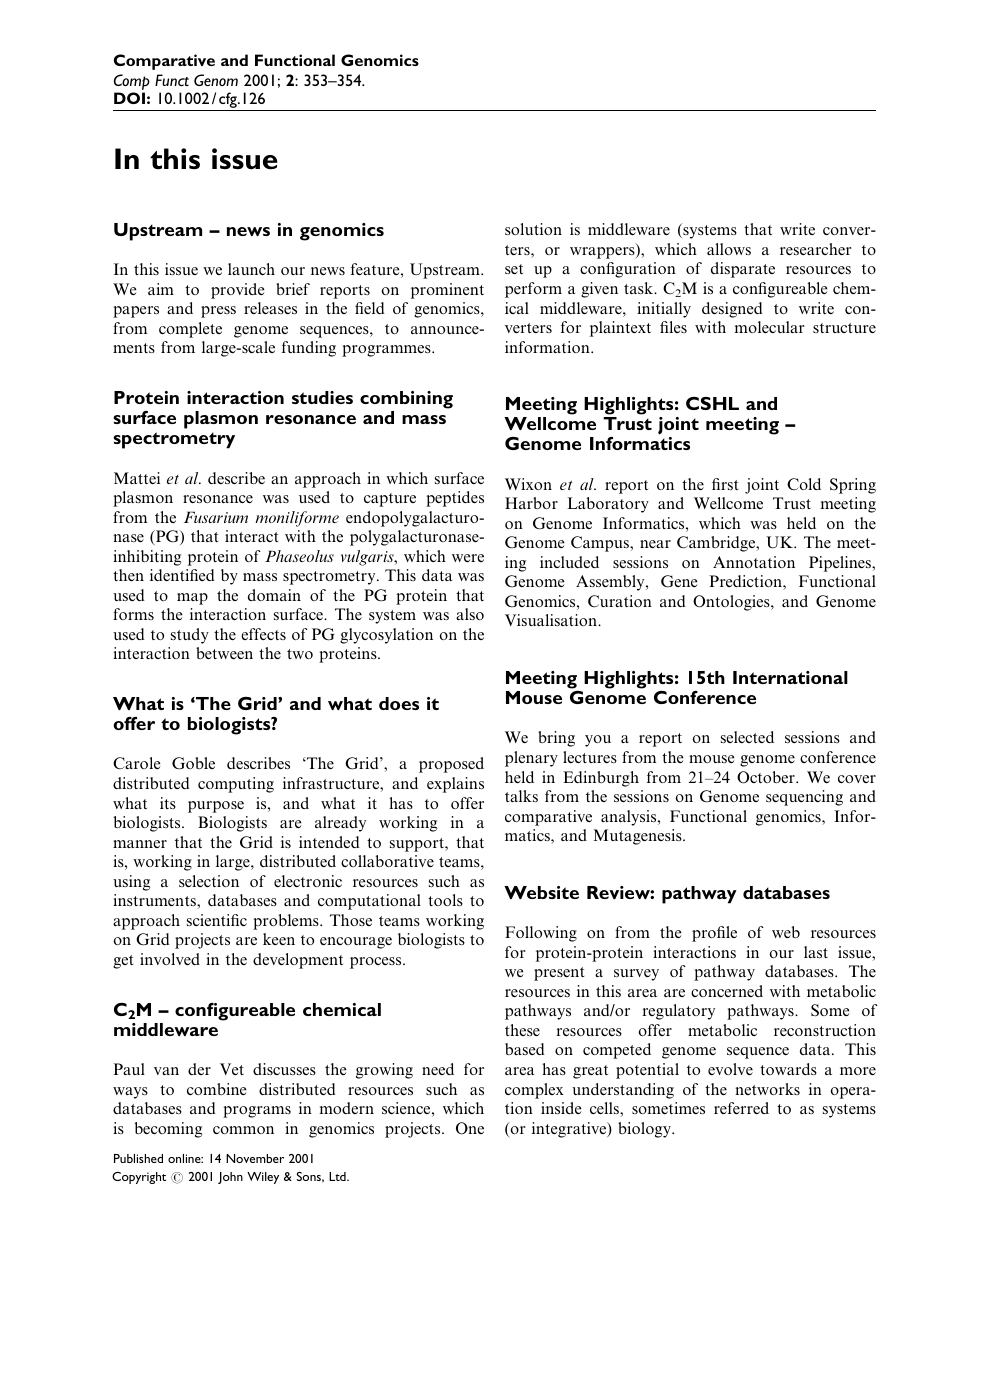 005 Interesting Research Paper Topics Biology Fearsome Marine Full